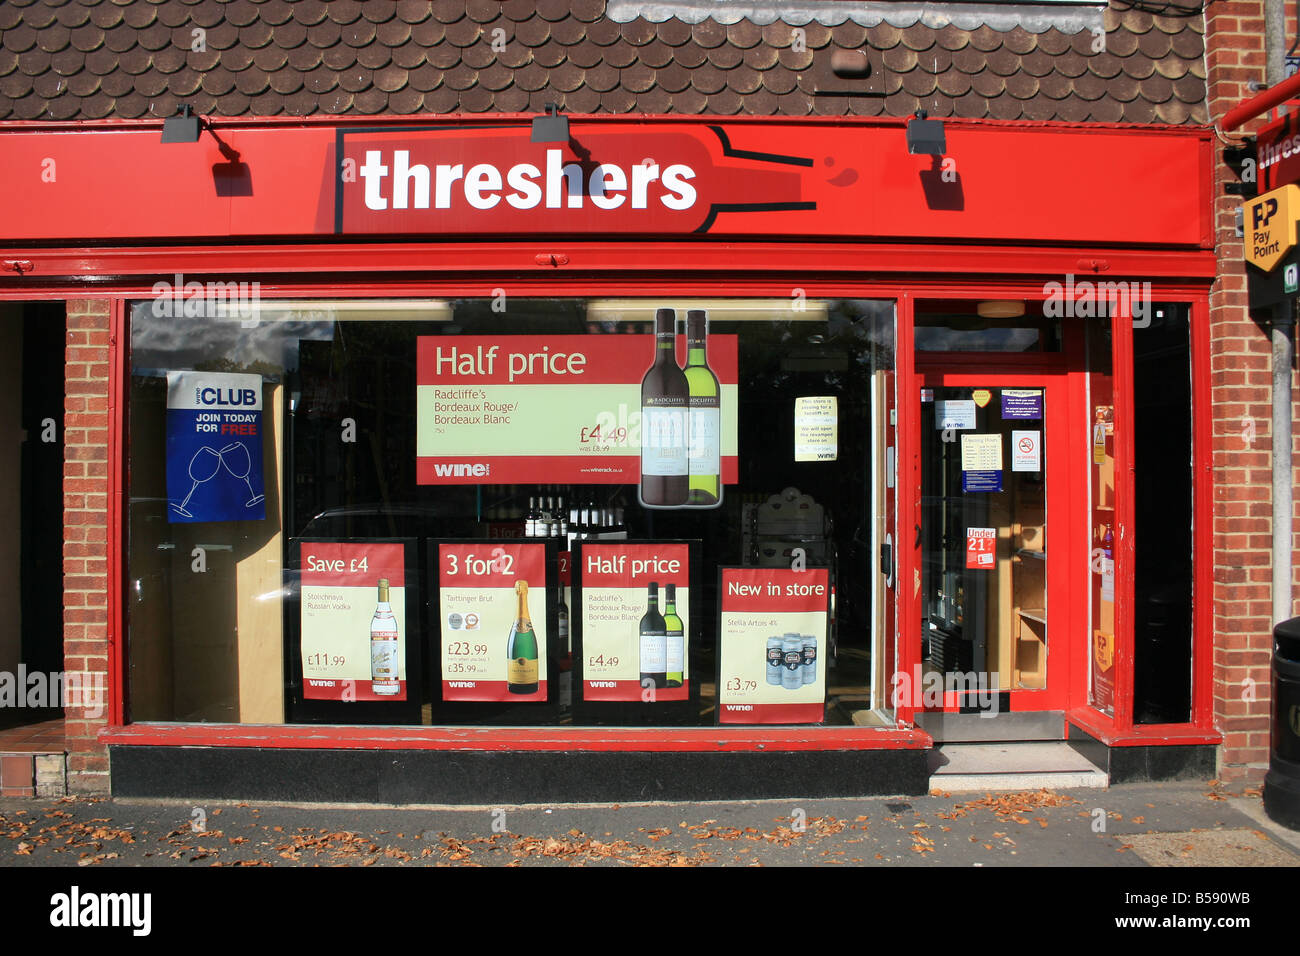 THRESHERS OFF LICENCE - Stock Image